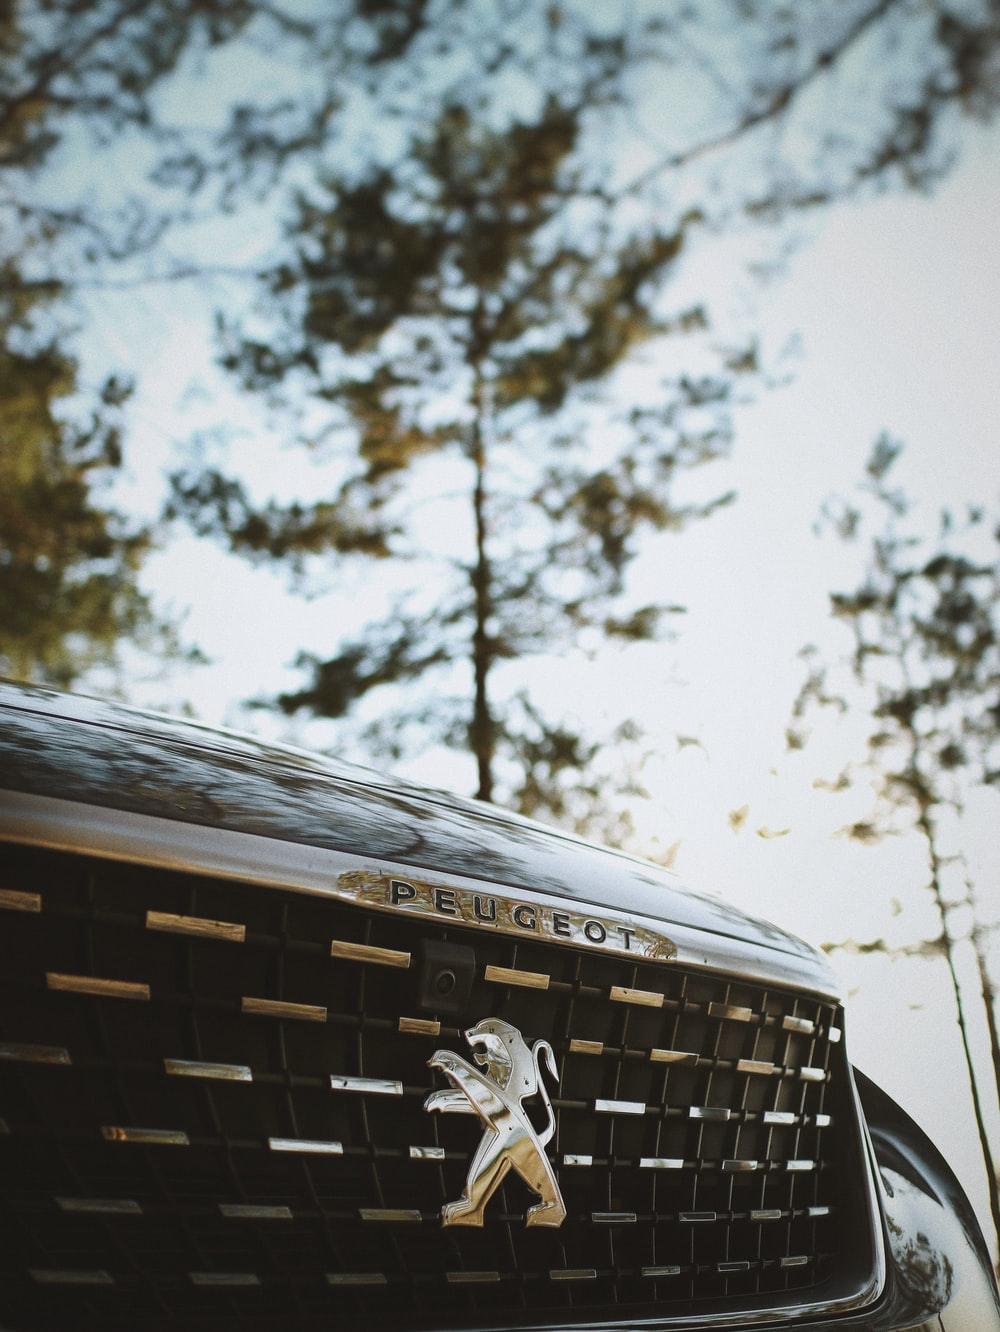 close-up photography of Peugeot grille